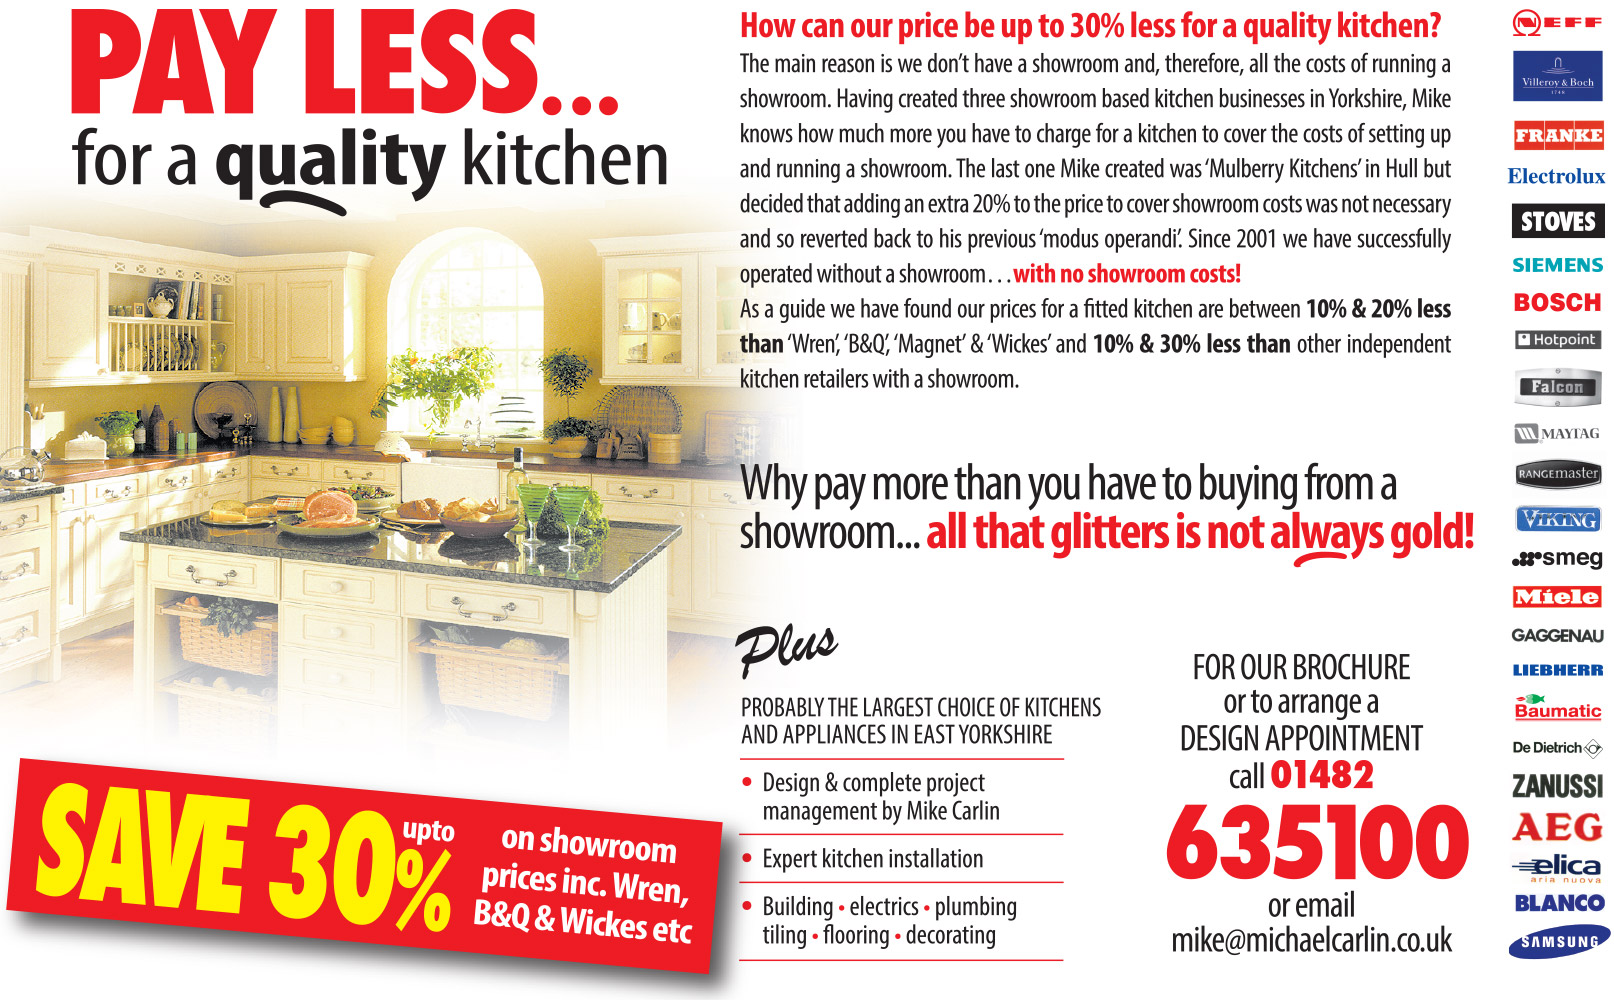 Pay less for a quality kitchen